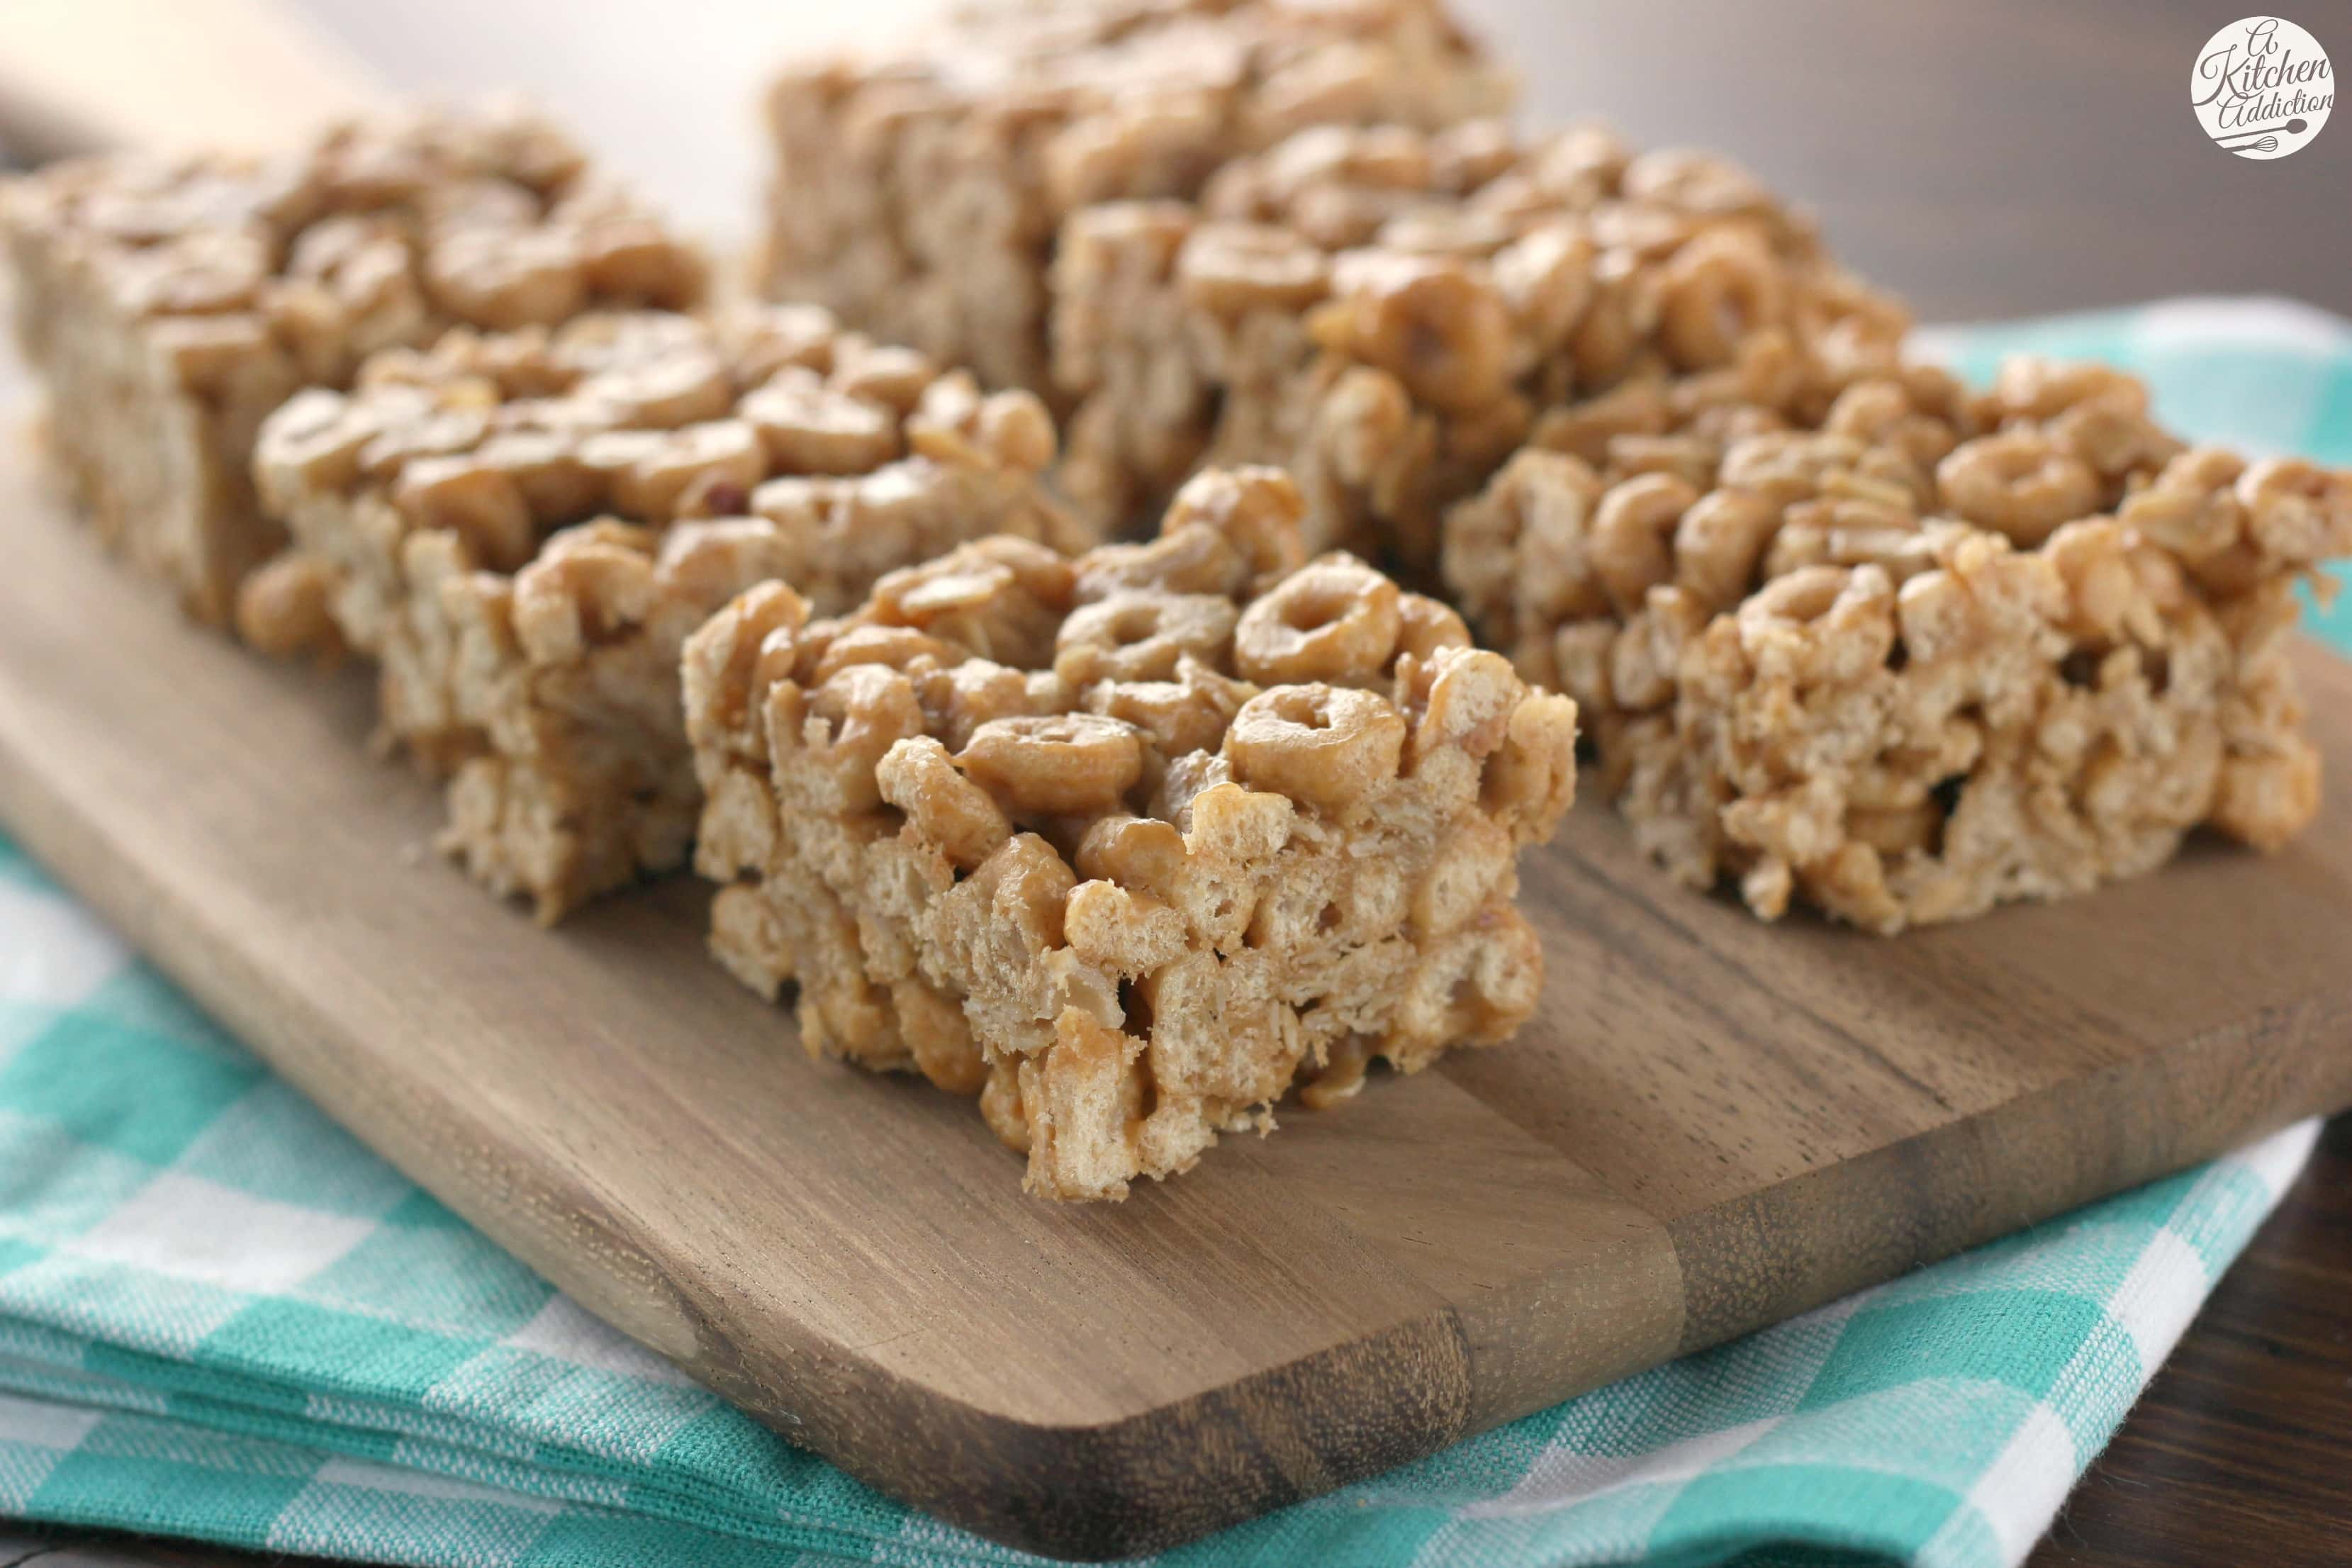 Peanut butter honey cereal bars a kitchen addiction peanut butter honey cereal bars recipe l a kitchen addiction ccuart Image collections